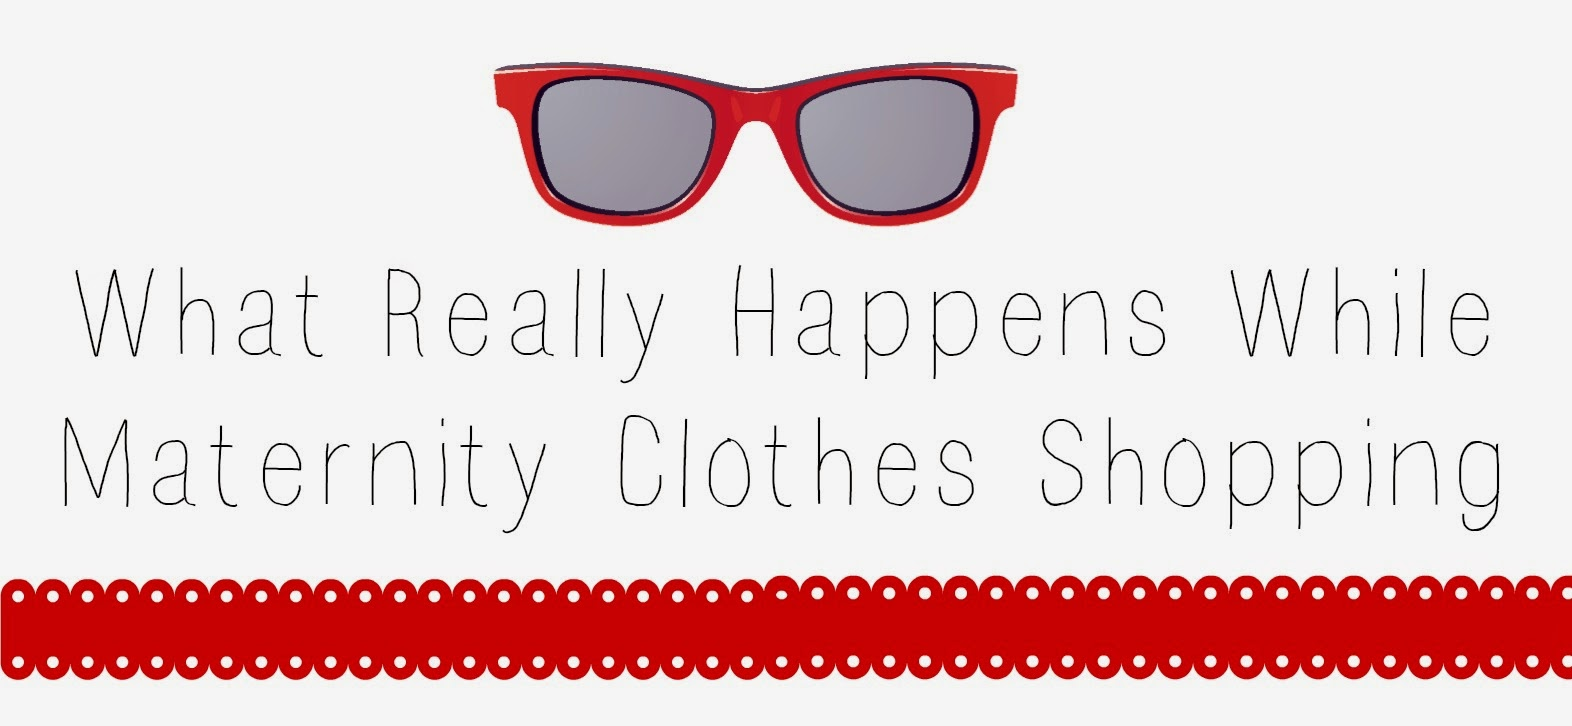 What Really Happens While Maternity Clothes Shopping